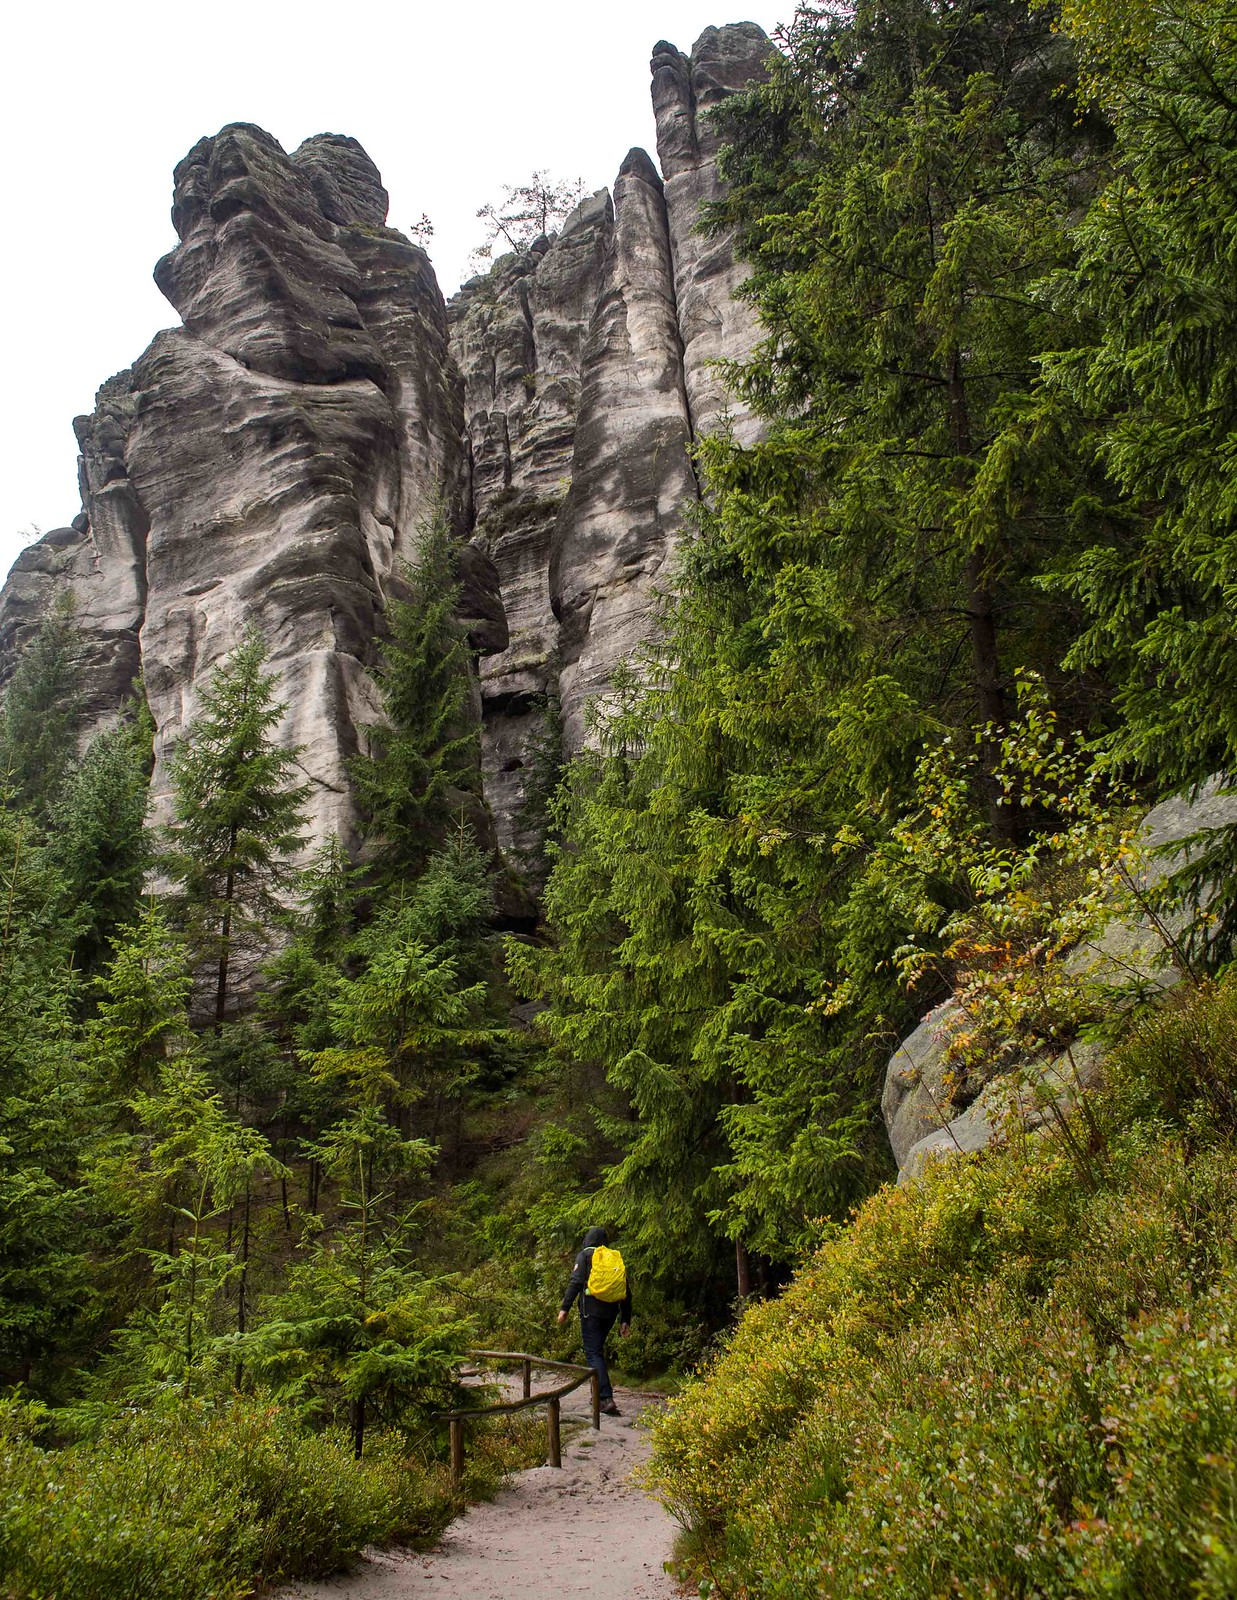 Stunning hiking routes in the Czech Republic: Adrspach-Teplice Rock Towns